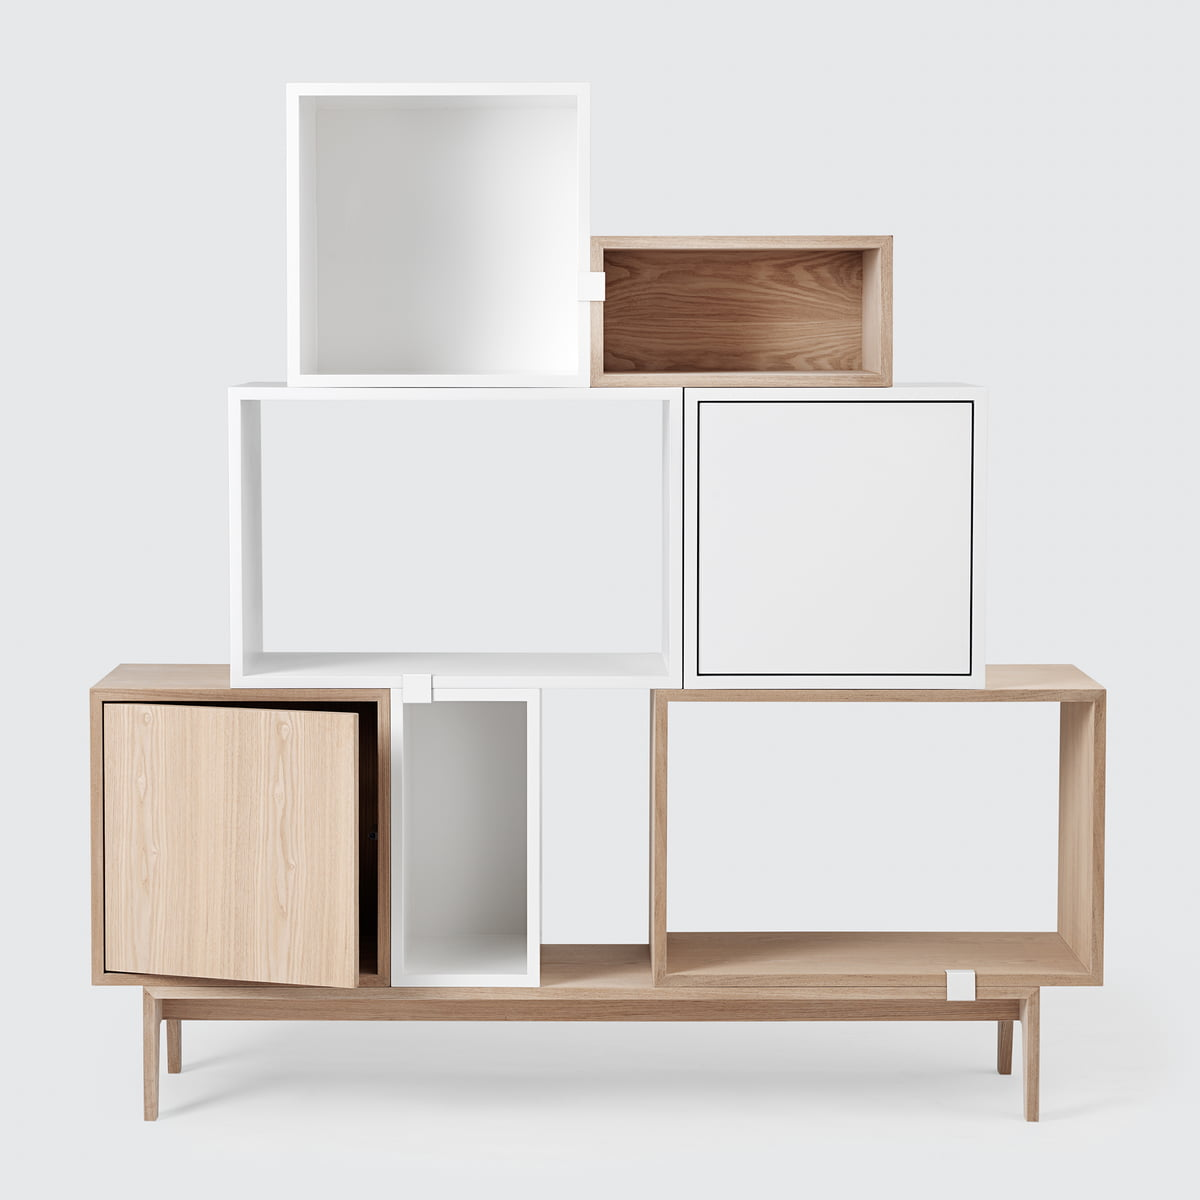 stacked 2.0 tür-modul | muuto | connox